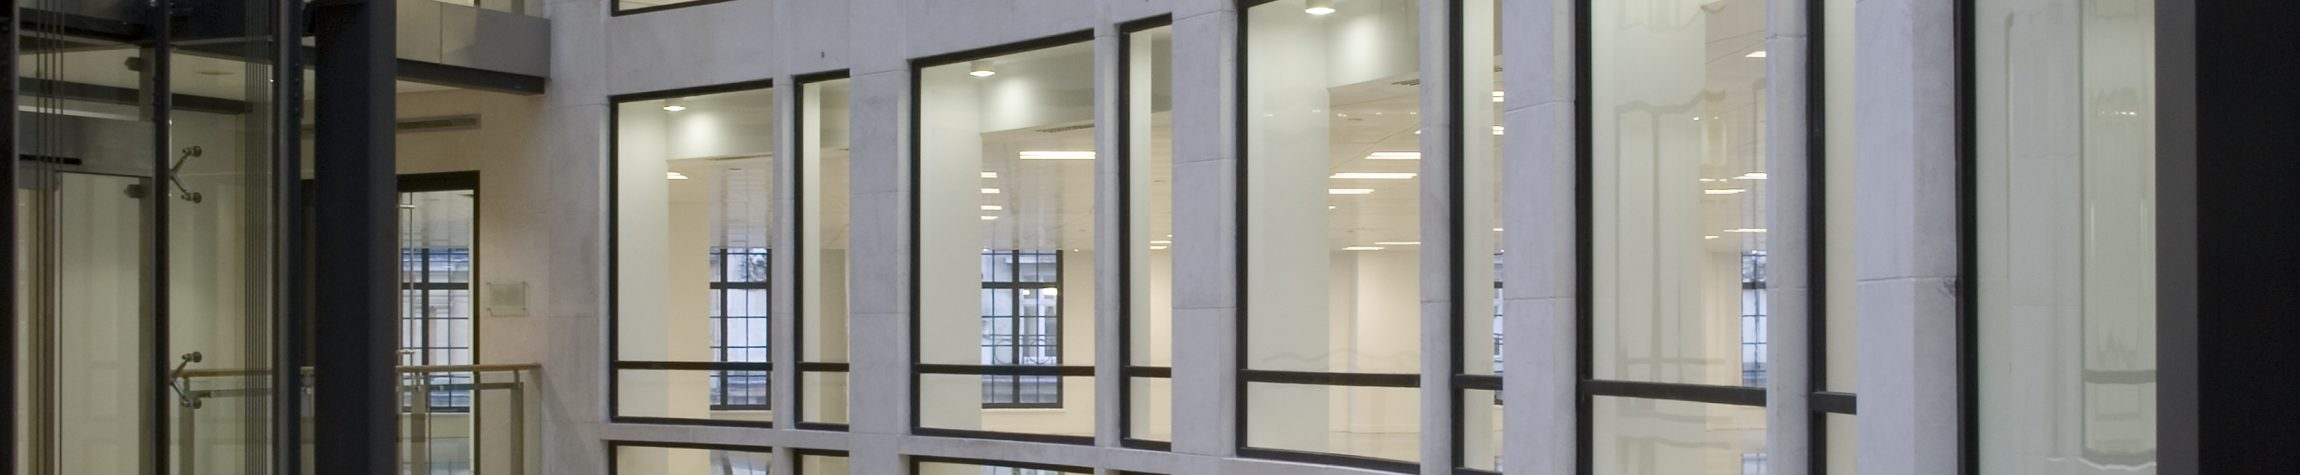 1 finsbury circus office Drywall Partitions